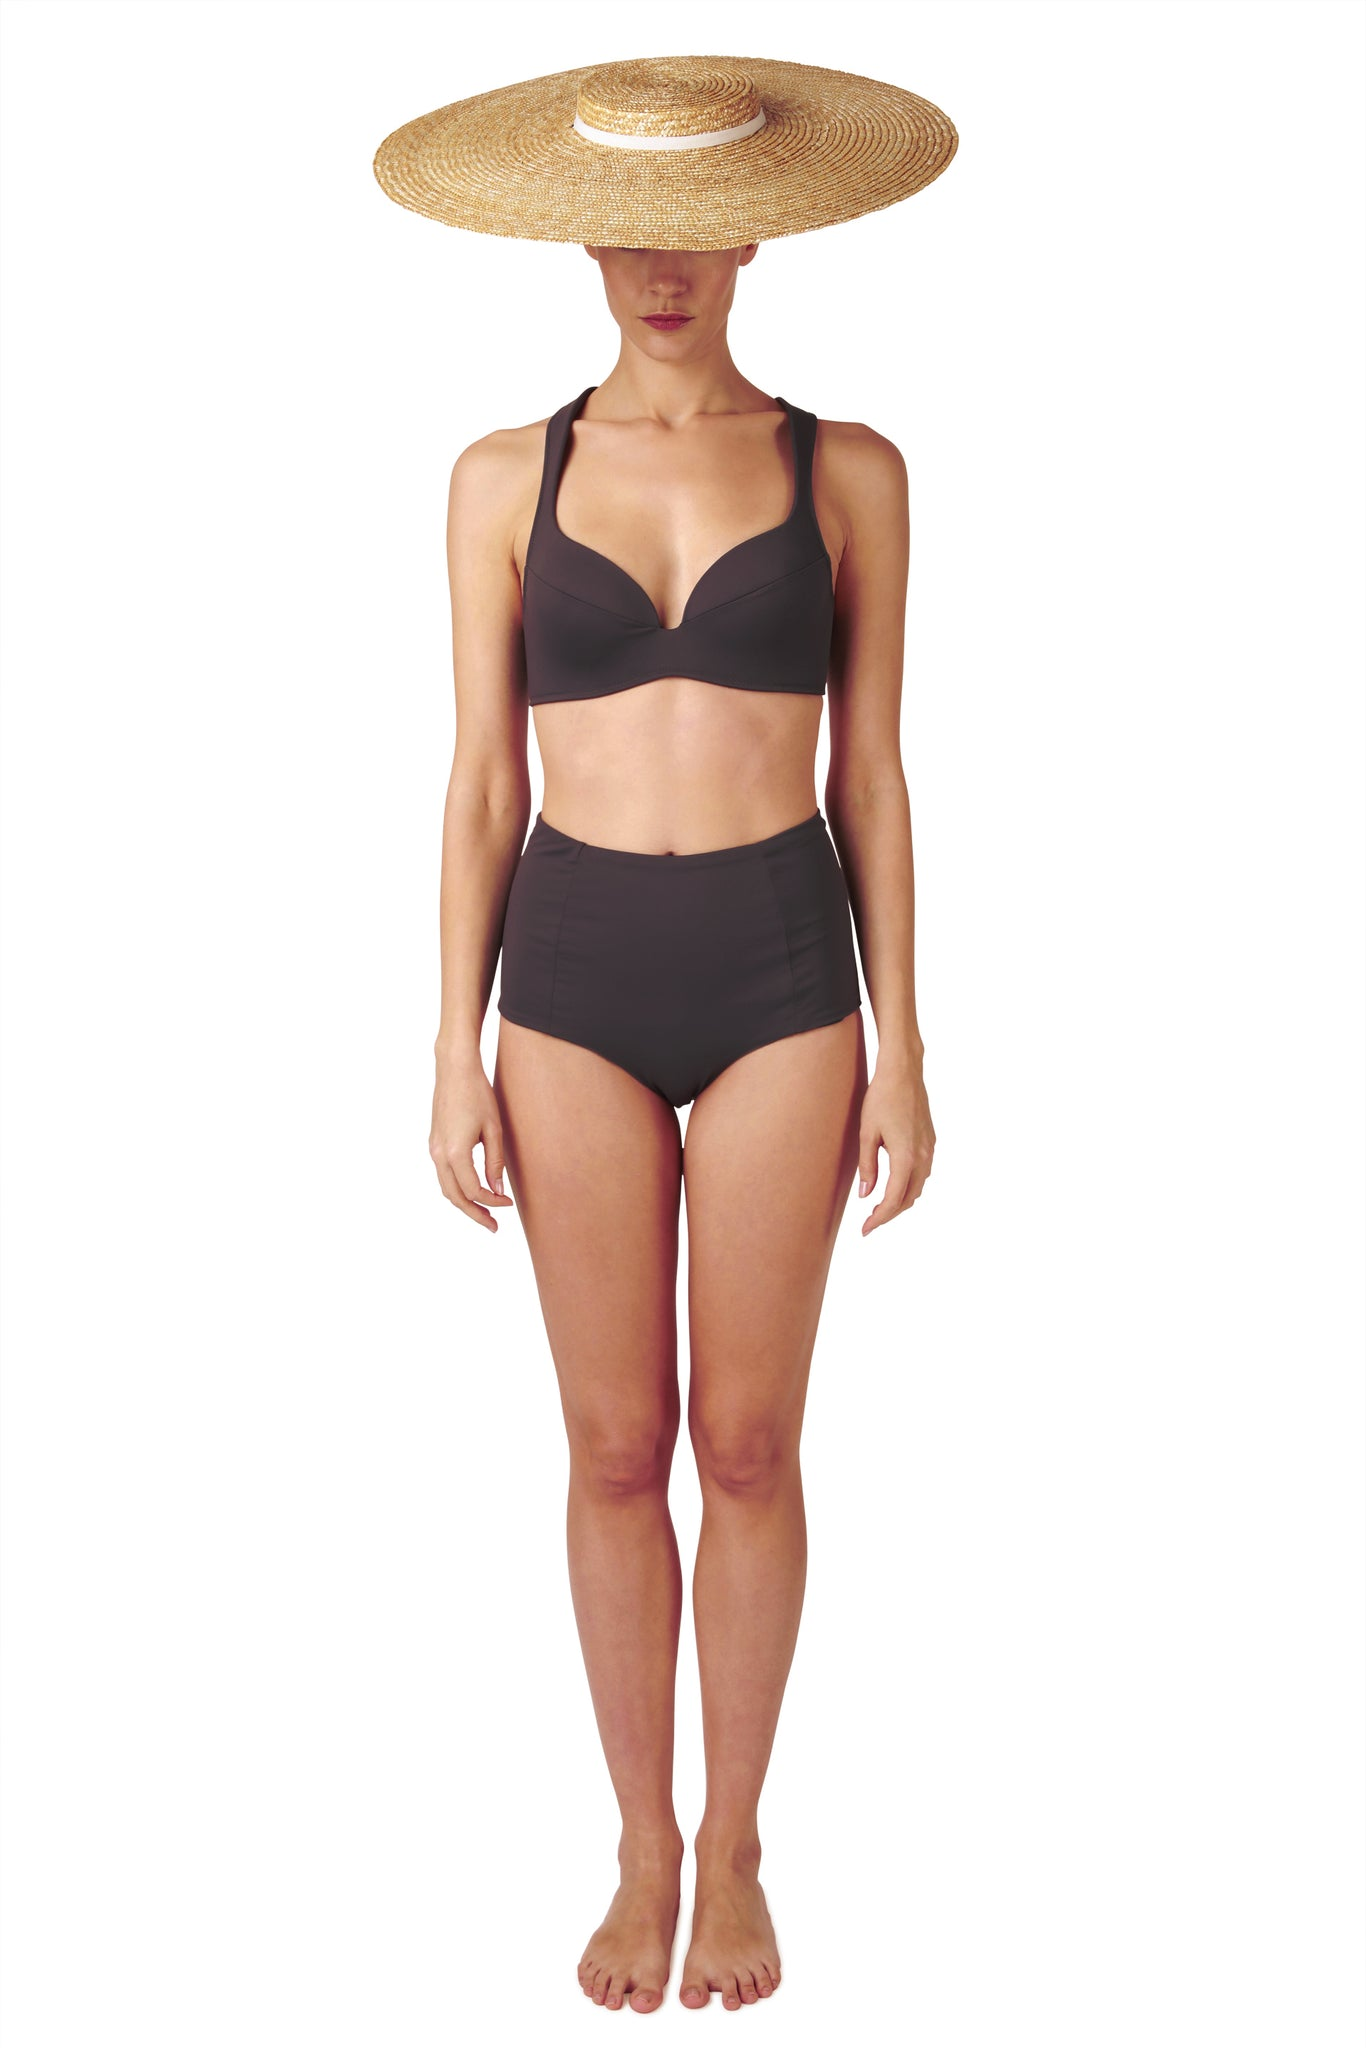 High waisted bikini in charcoal with retro look and reversible by Caroline af Rosenborg